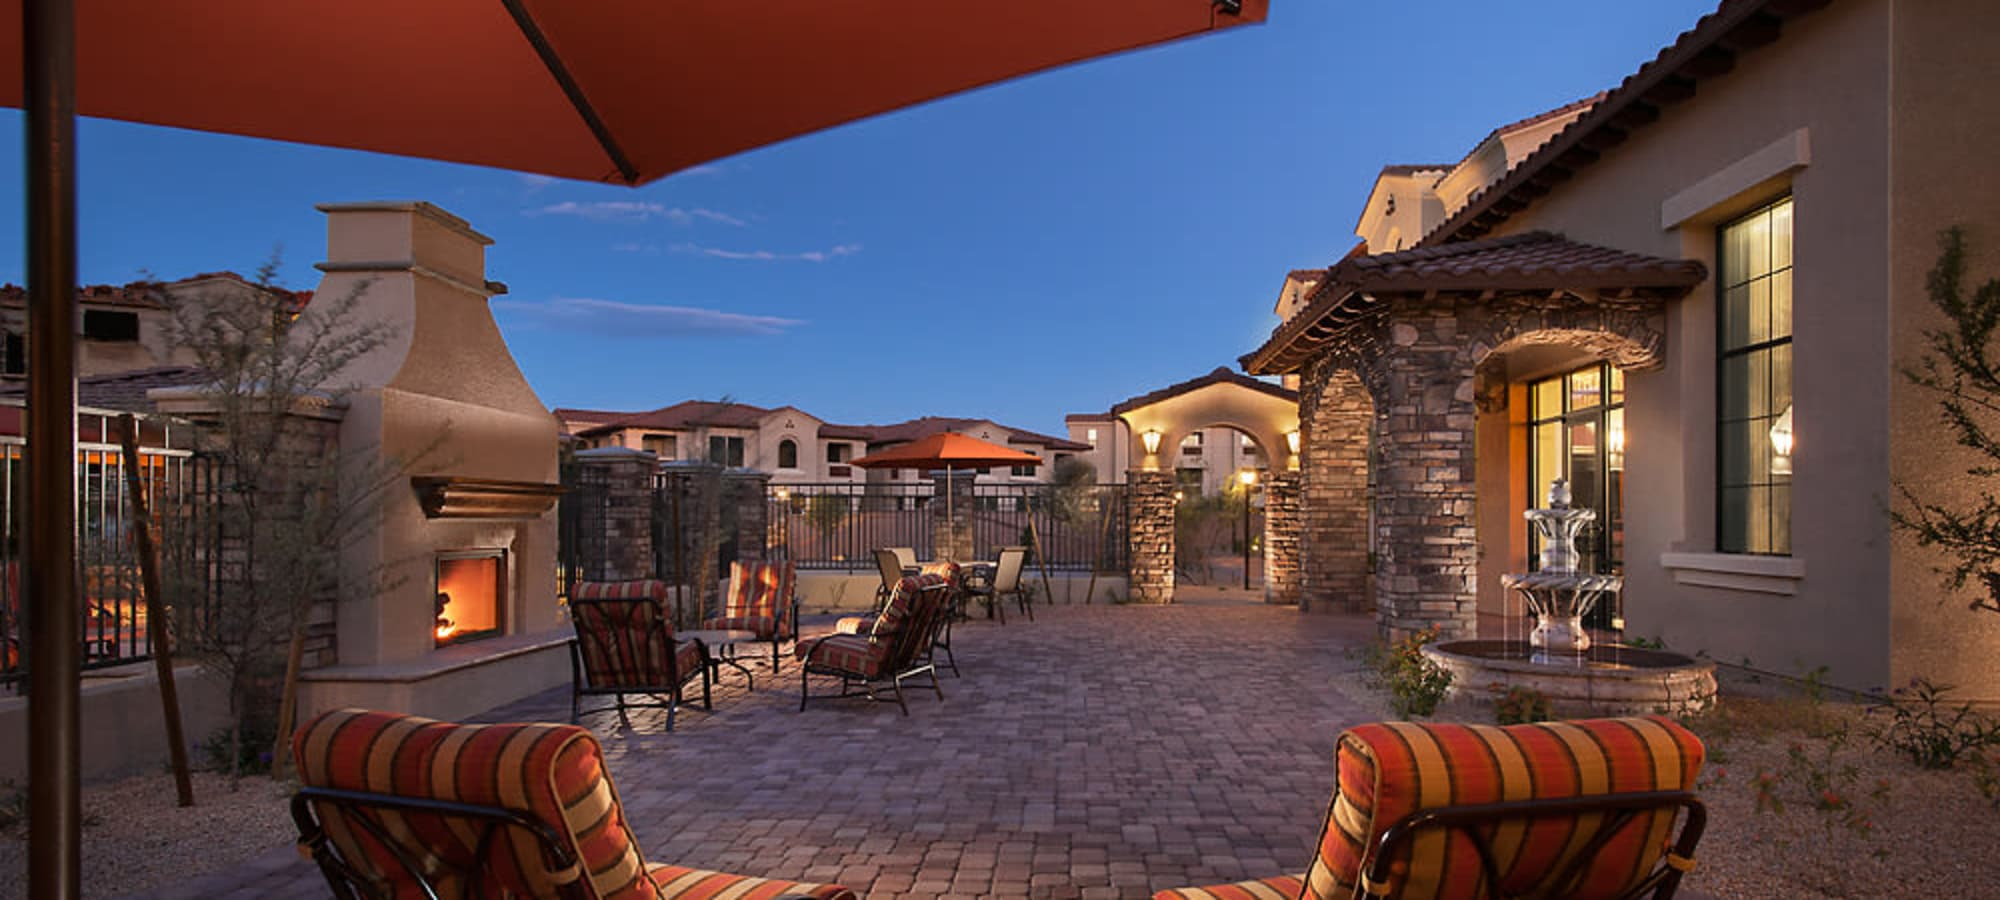 Community patio with outdoor fireplace at San Norterra in Phoenix, Arizona